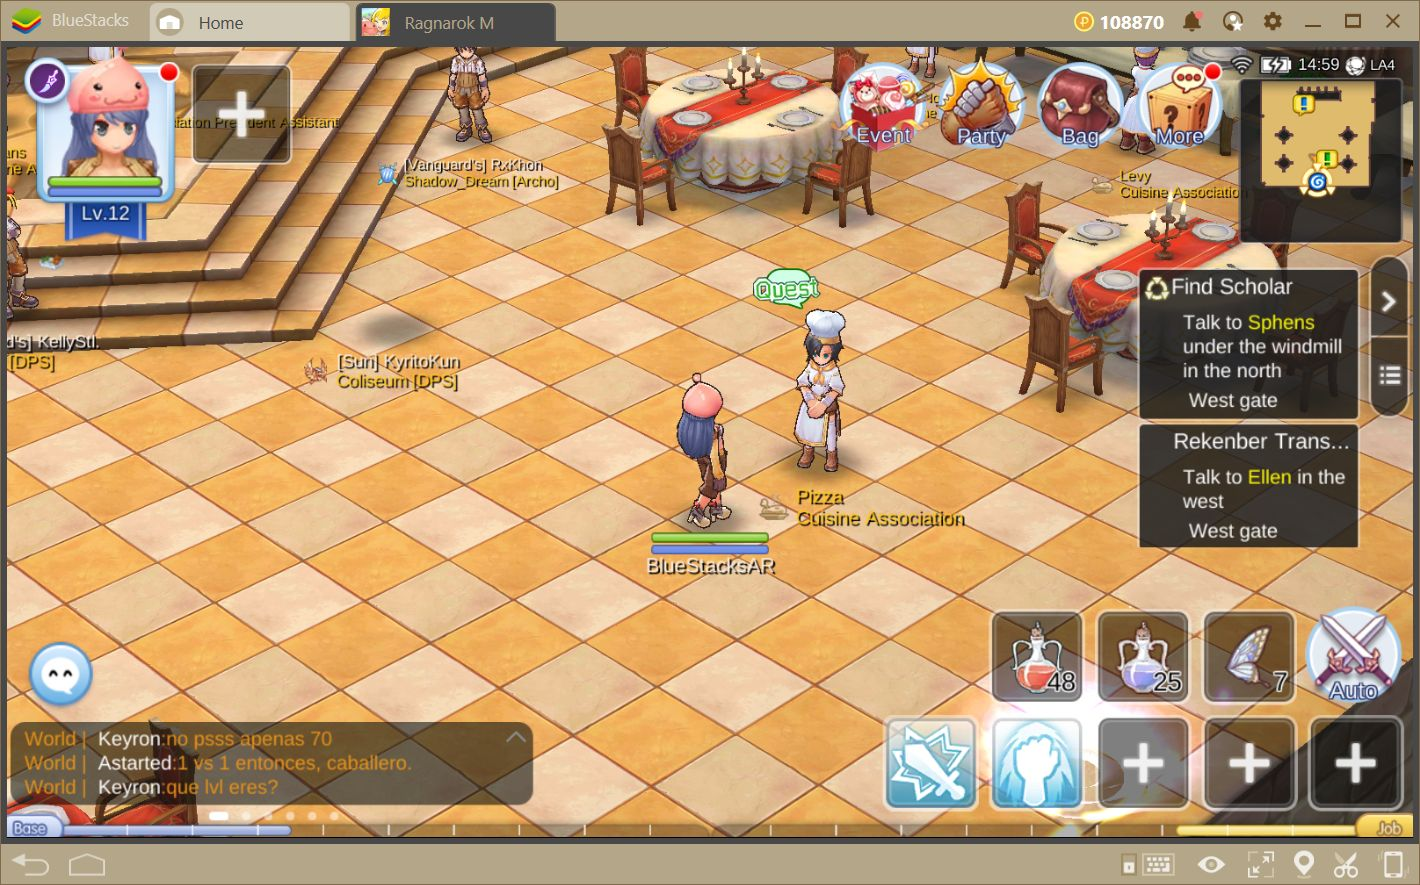 Ragnarok M: Eternal Love—What is the Adventurer Rank and Why